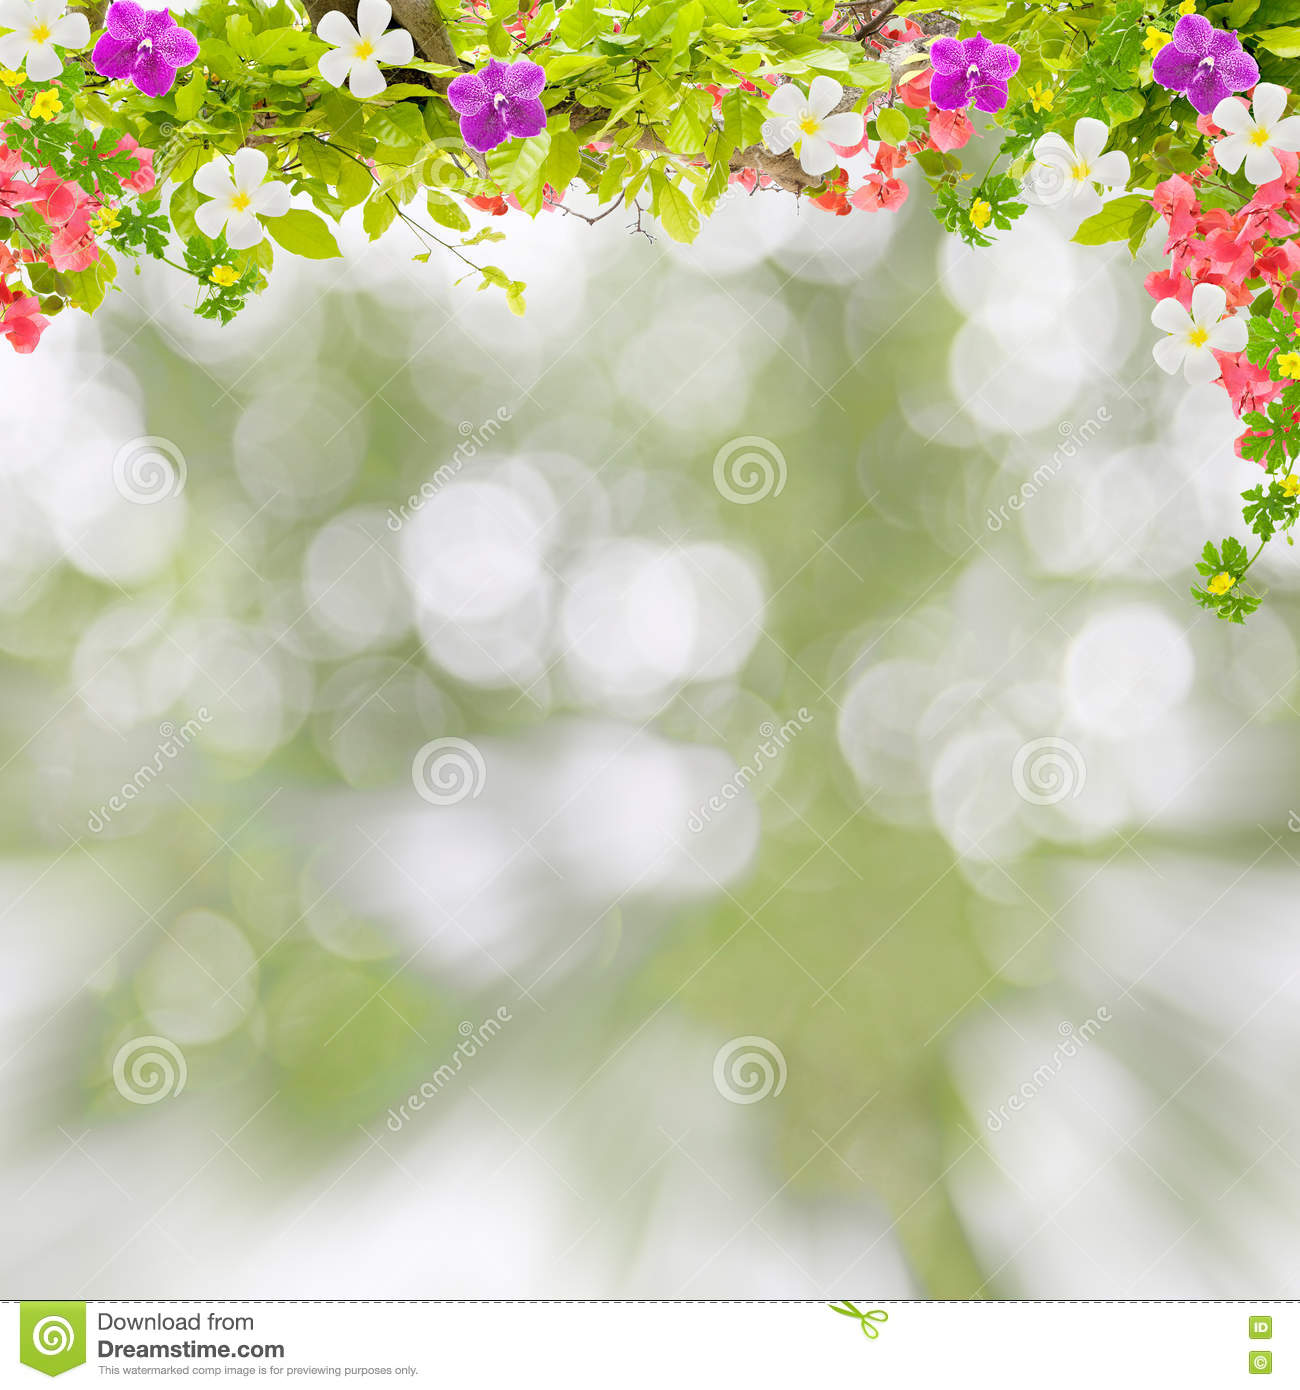 Nature blur background stock photos 128329 images beautiful green leaves frame with flower on scenery nature blur background stock photography izmirmasajfo Images